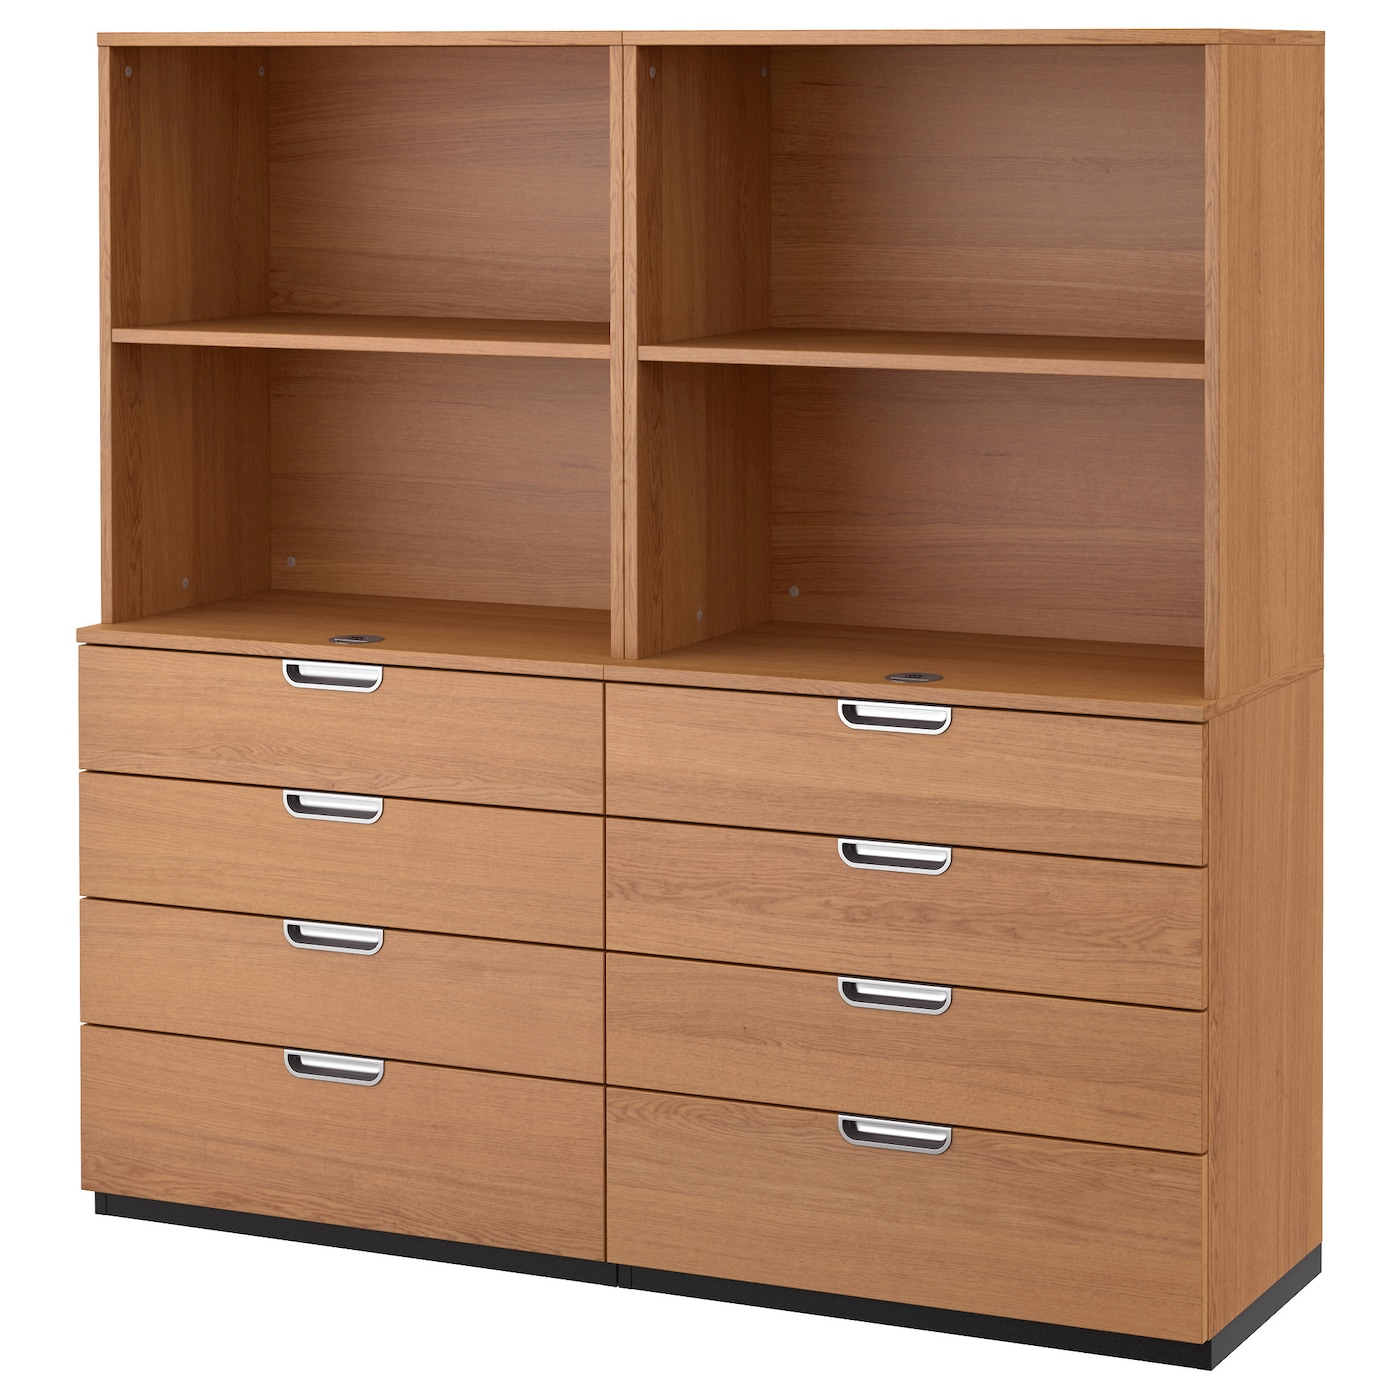 galant storage combination with drawers oak veneer 160x160 cm ikea. Black Bedroom Furniture Sets. Home Design Ideas